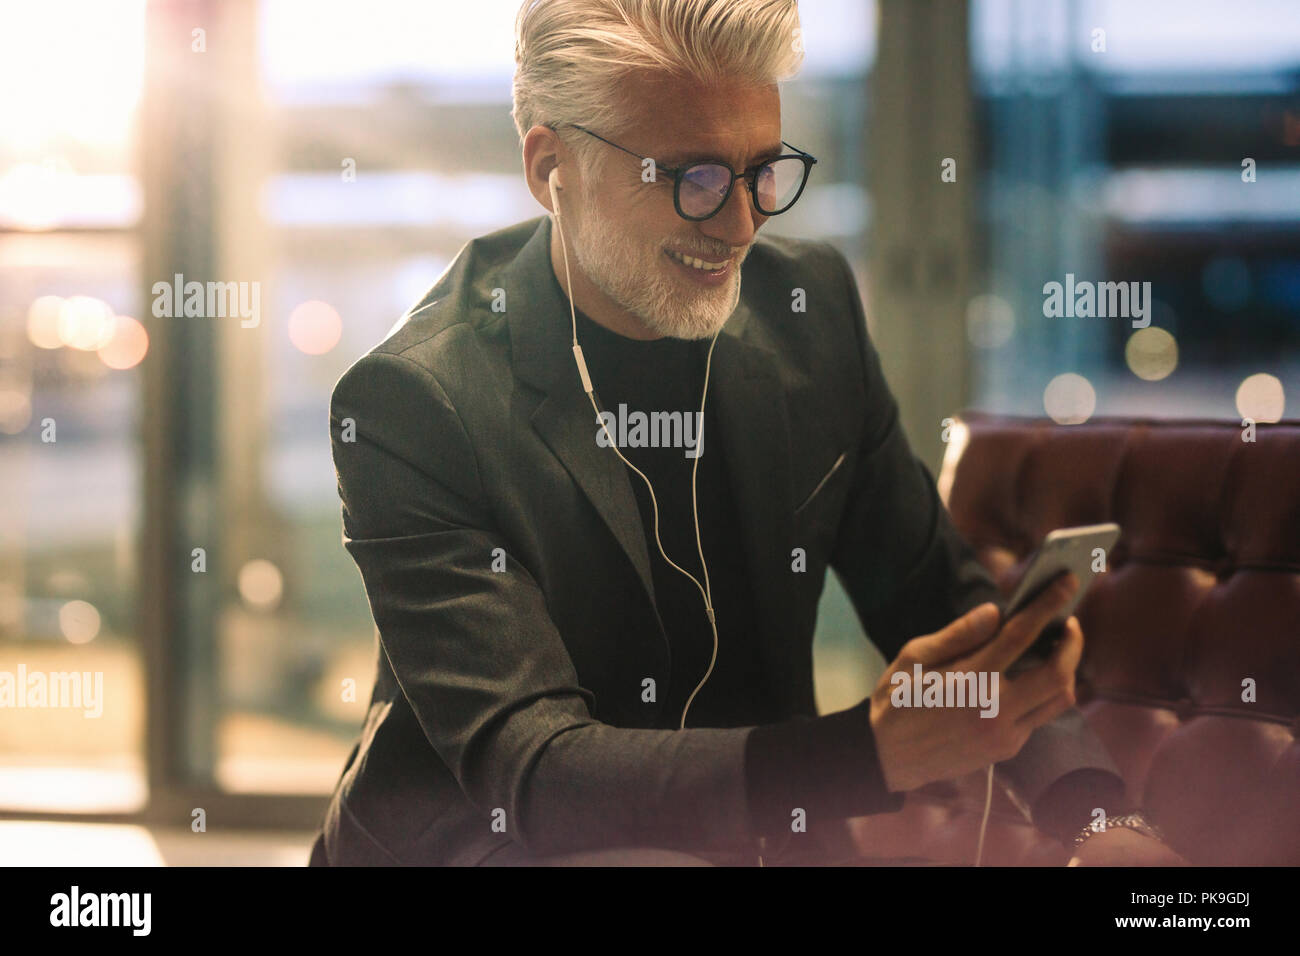 Mature businessman sitting in office lobby making video call with his smart phone. Caucasian man with white hair in office making video call. - Stock Image